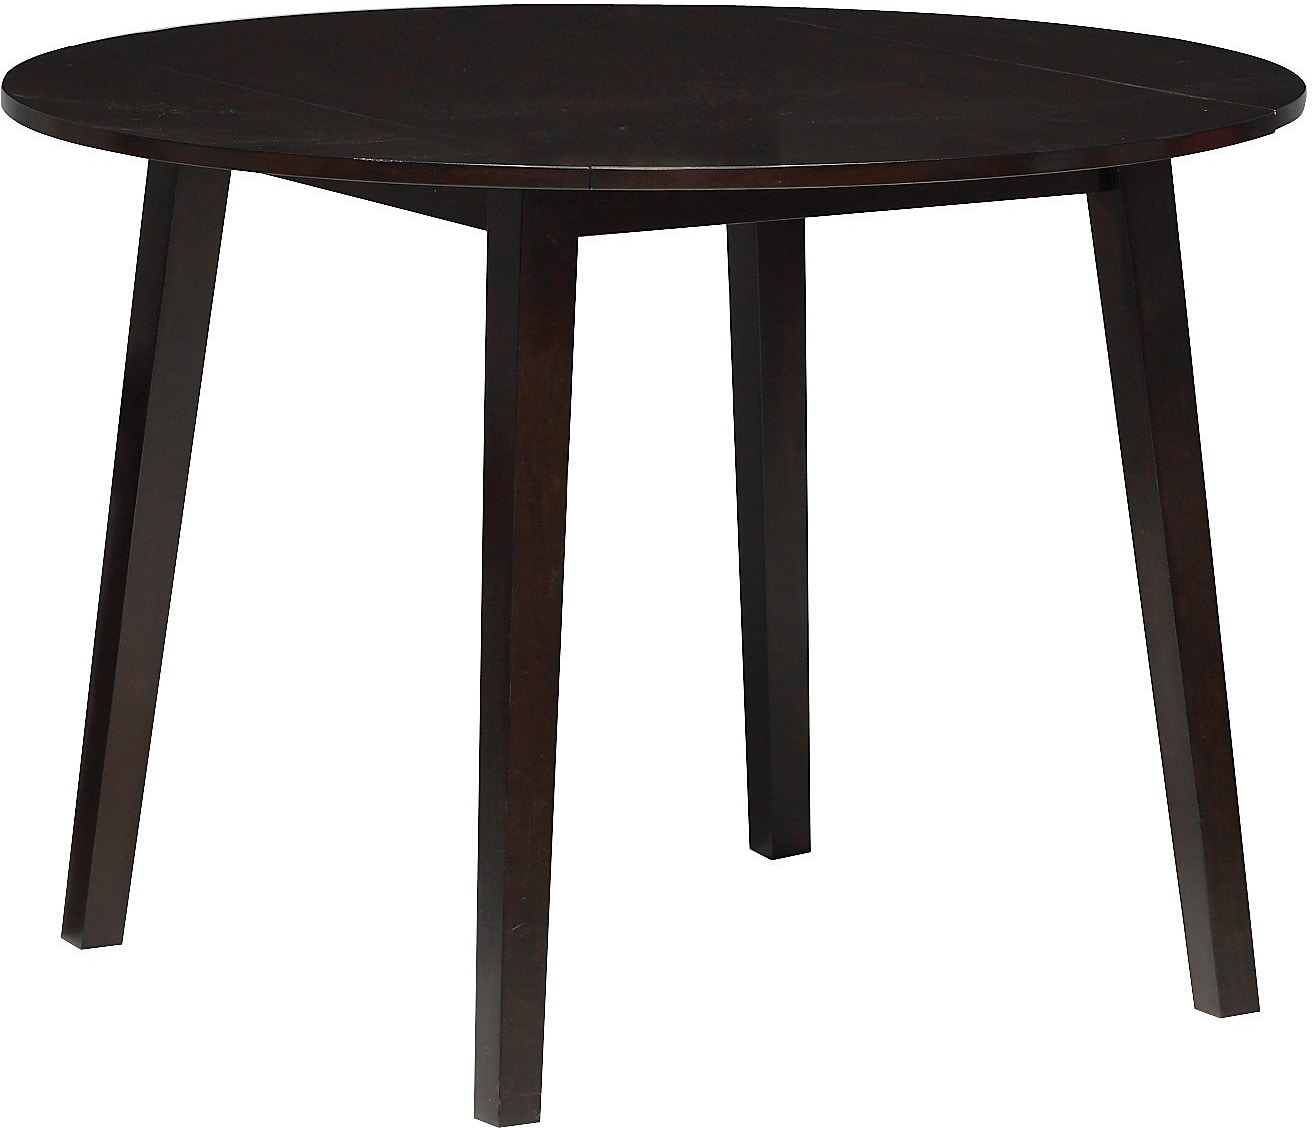 Adara Round Drop-Leaf Dining Table